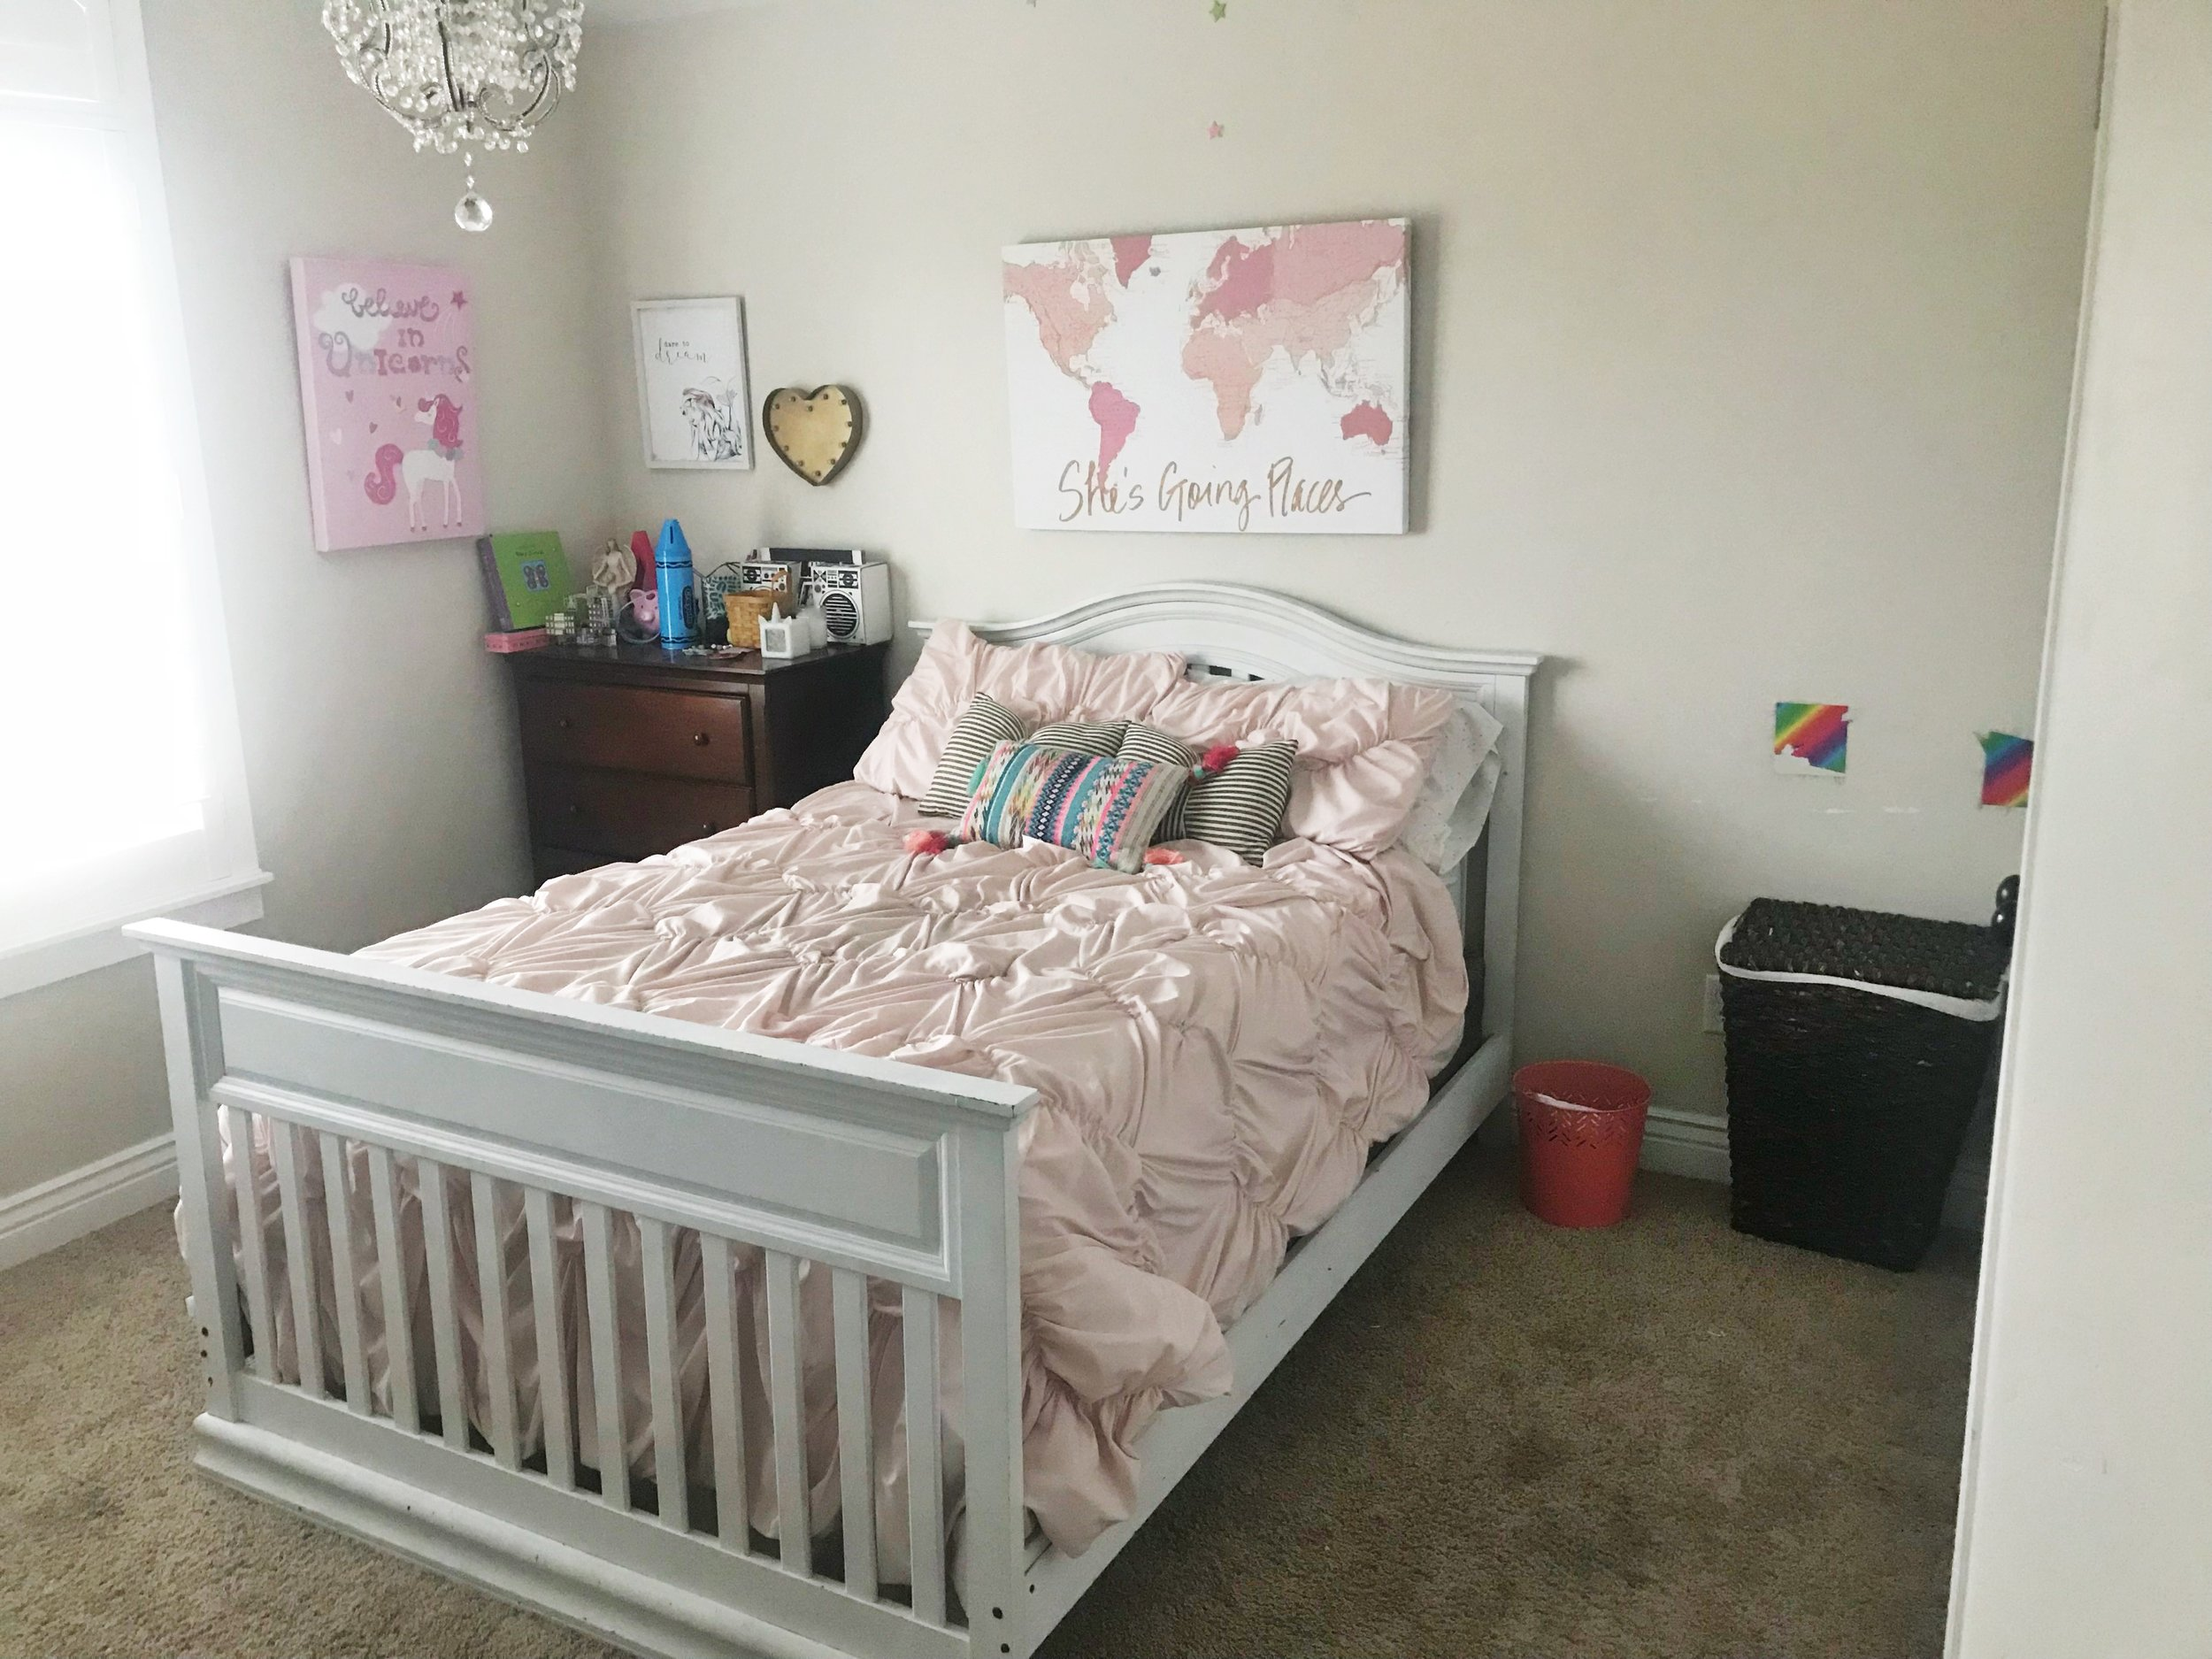 my daughters bedroom remodel little girls bedroom ideas the little milk bar blog for new and breastfeeding moms 2.JPG